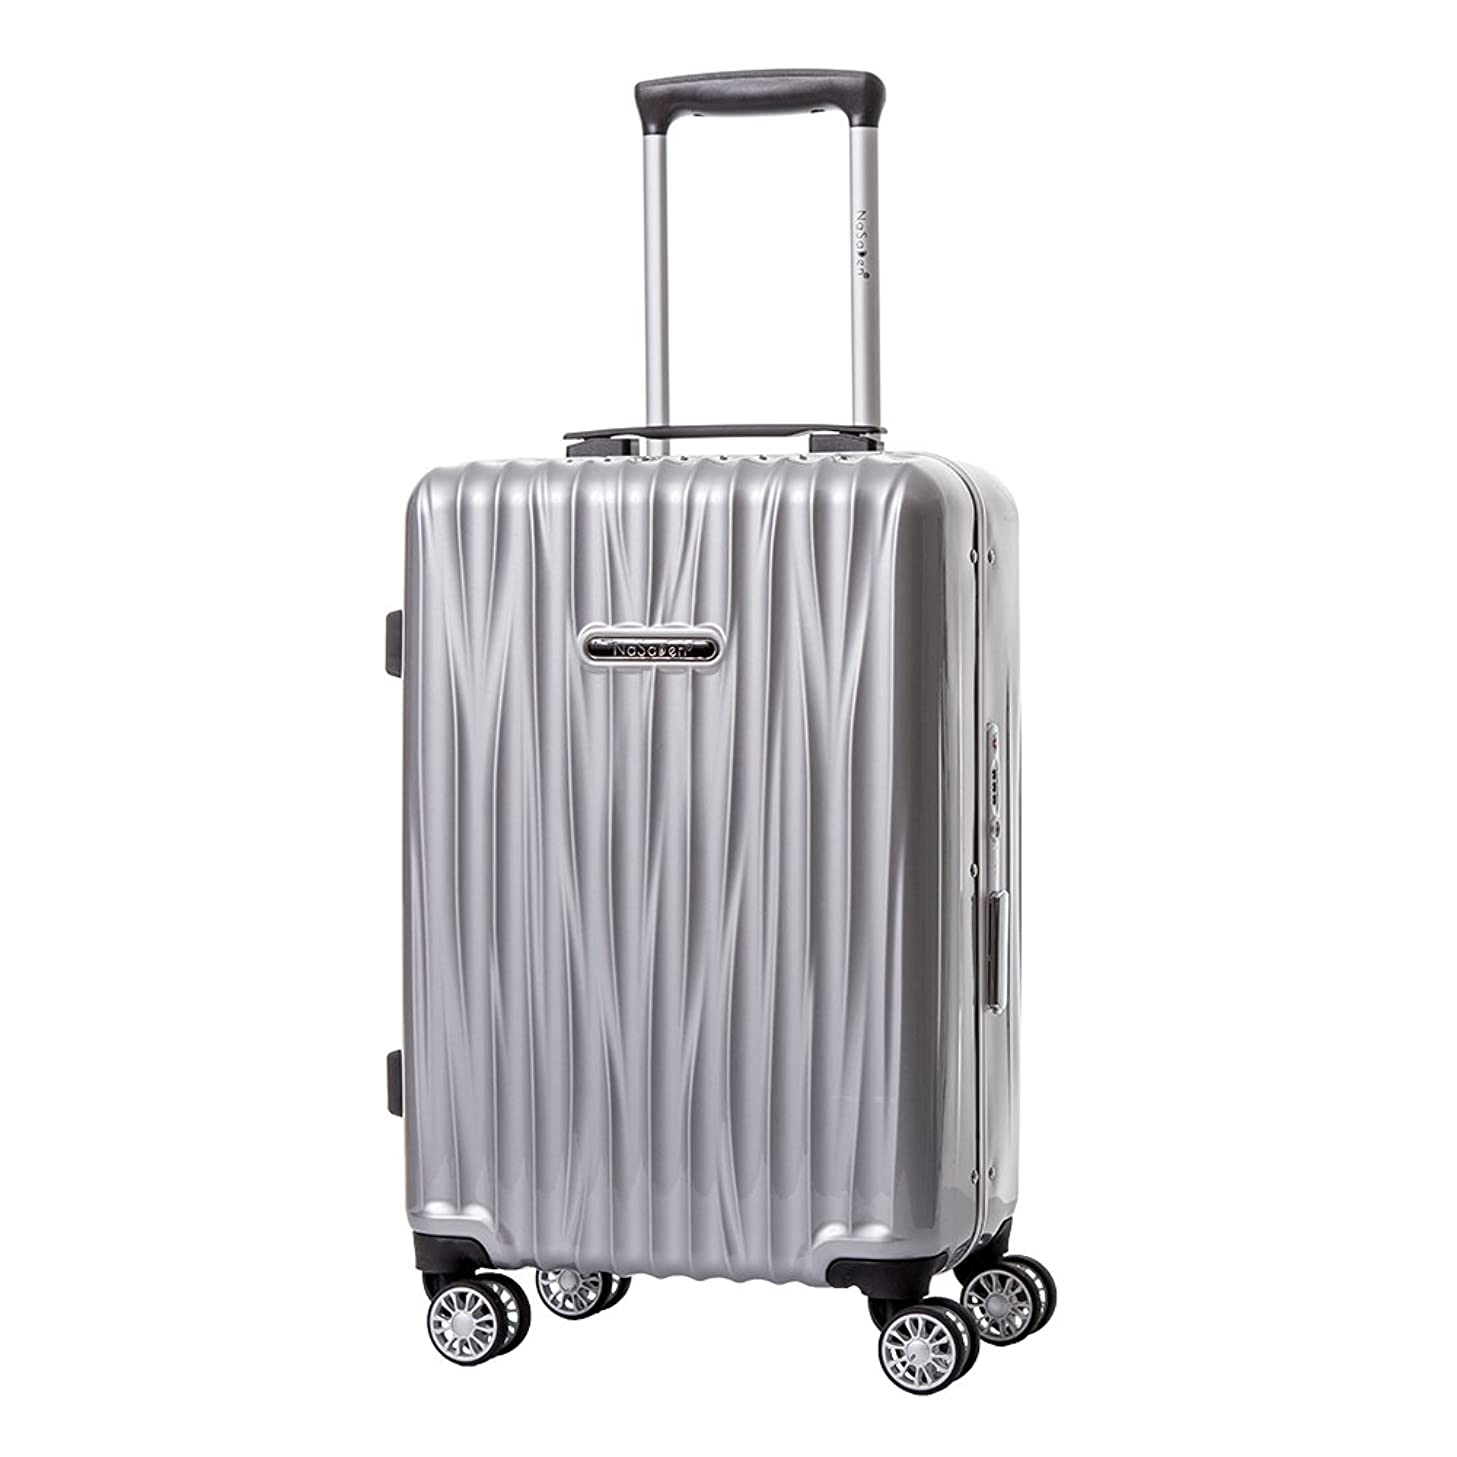 NaSaDen Aluminum Frame Hardside Luggage Spinner Suitcase with TSA Lock 100% PC Carry-On [Silver] 20in